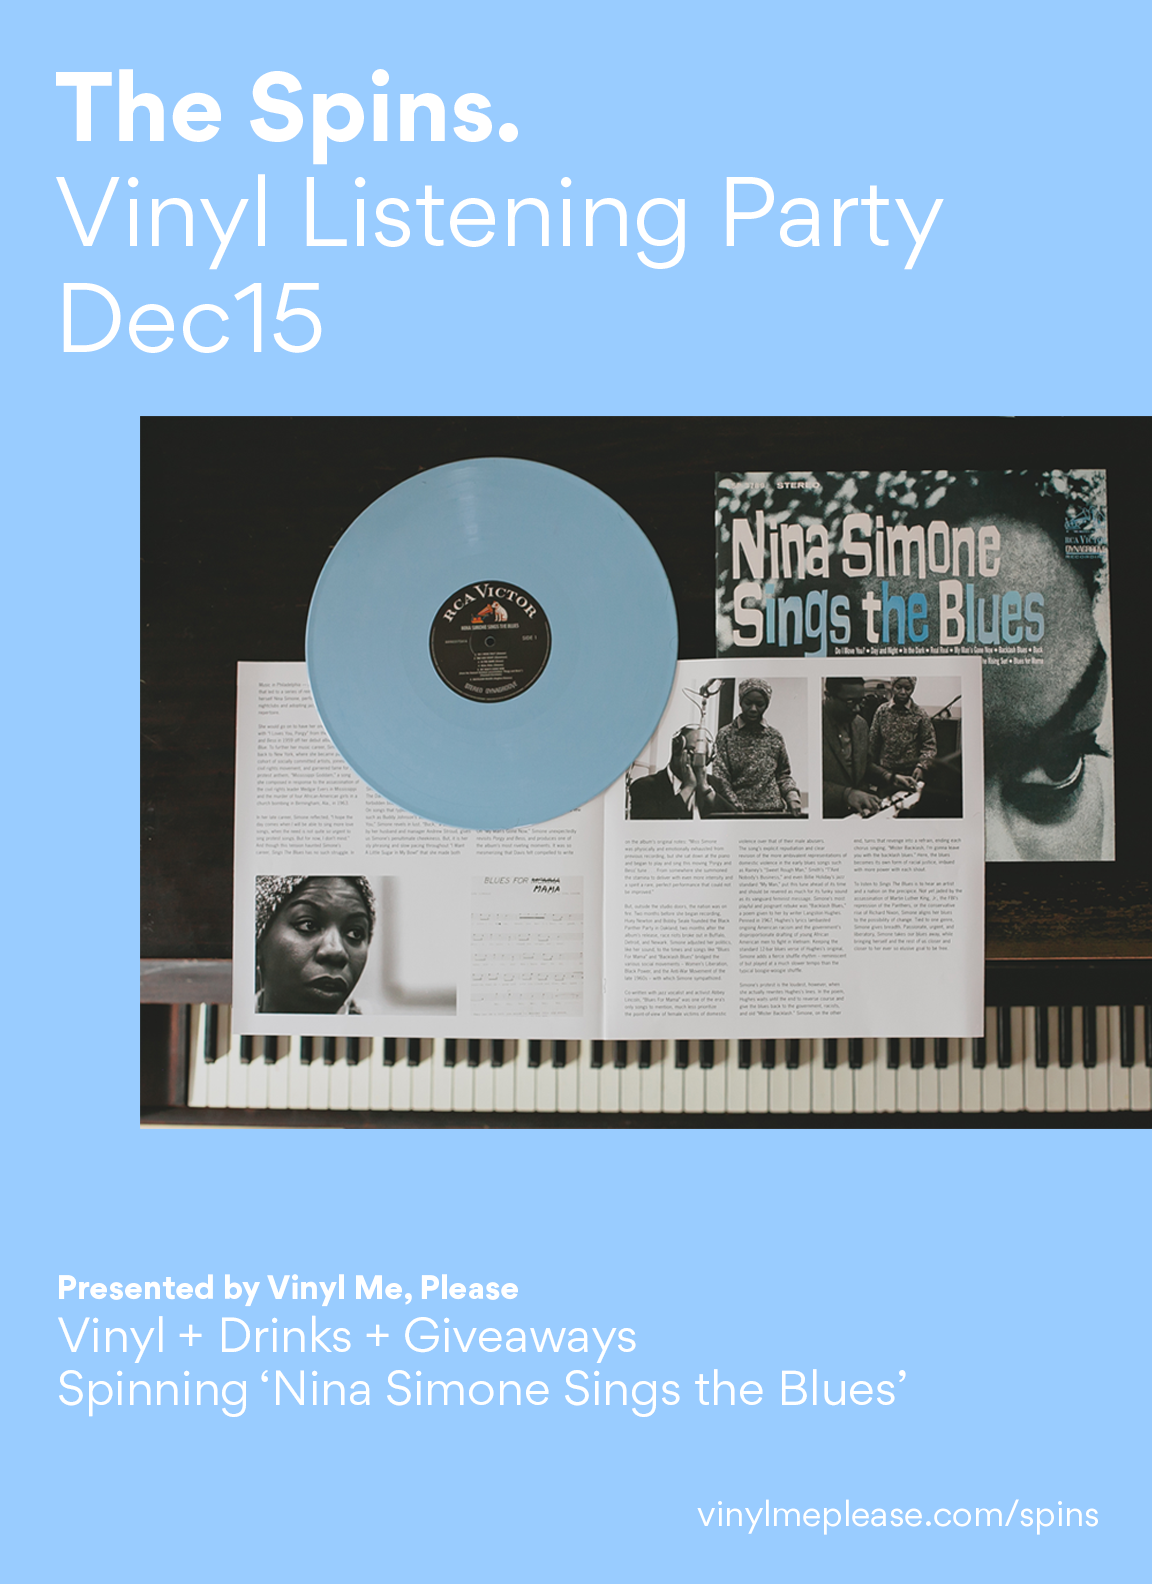 Enjoy a night listening to soul, jazz, and the blues, meeting the local vinyl-loving community, and drink specials, & get the chance to walk away with a free copy of the exclusive Nina Simone record.         Event will run from 6 - 9 PM on Thursday, December 15   at   Vinyl Tap at 2038 Greenwood Ave., Nashville, TN 37206.         In the spirit of the holiday season, g  ive the gift that keeps on giving, and you'll be loved forever...      http://www.vinylmeplease.com/gift/